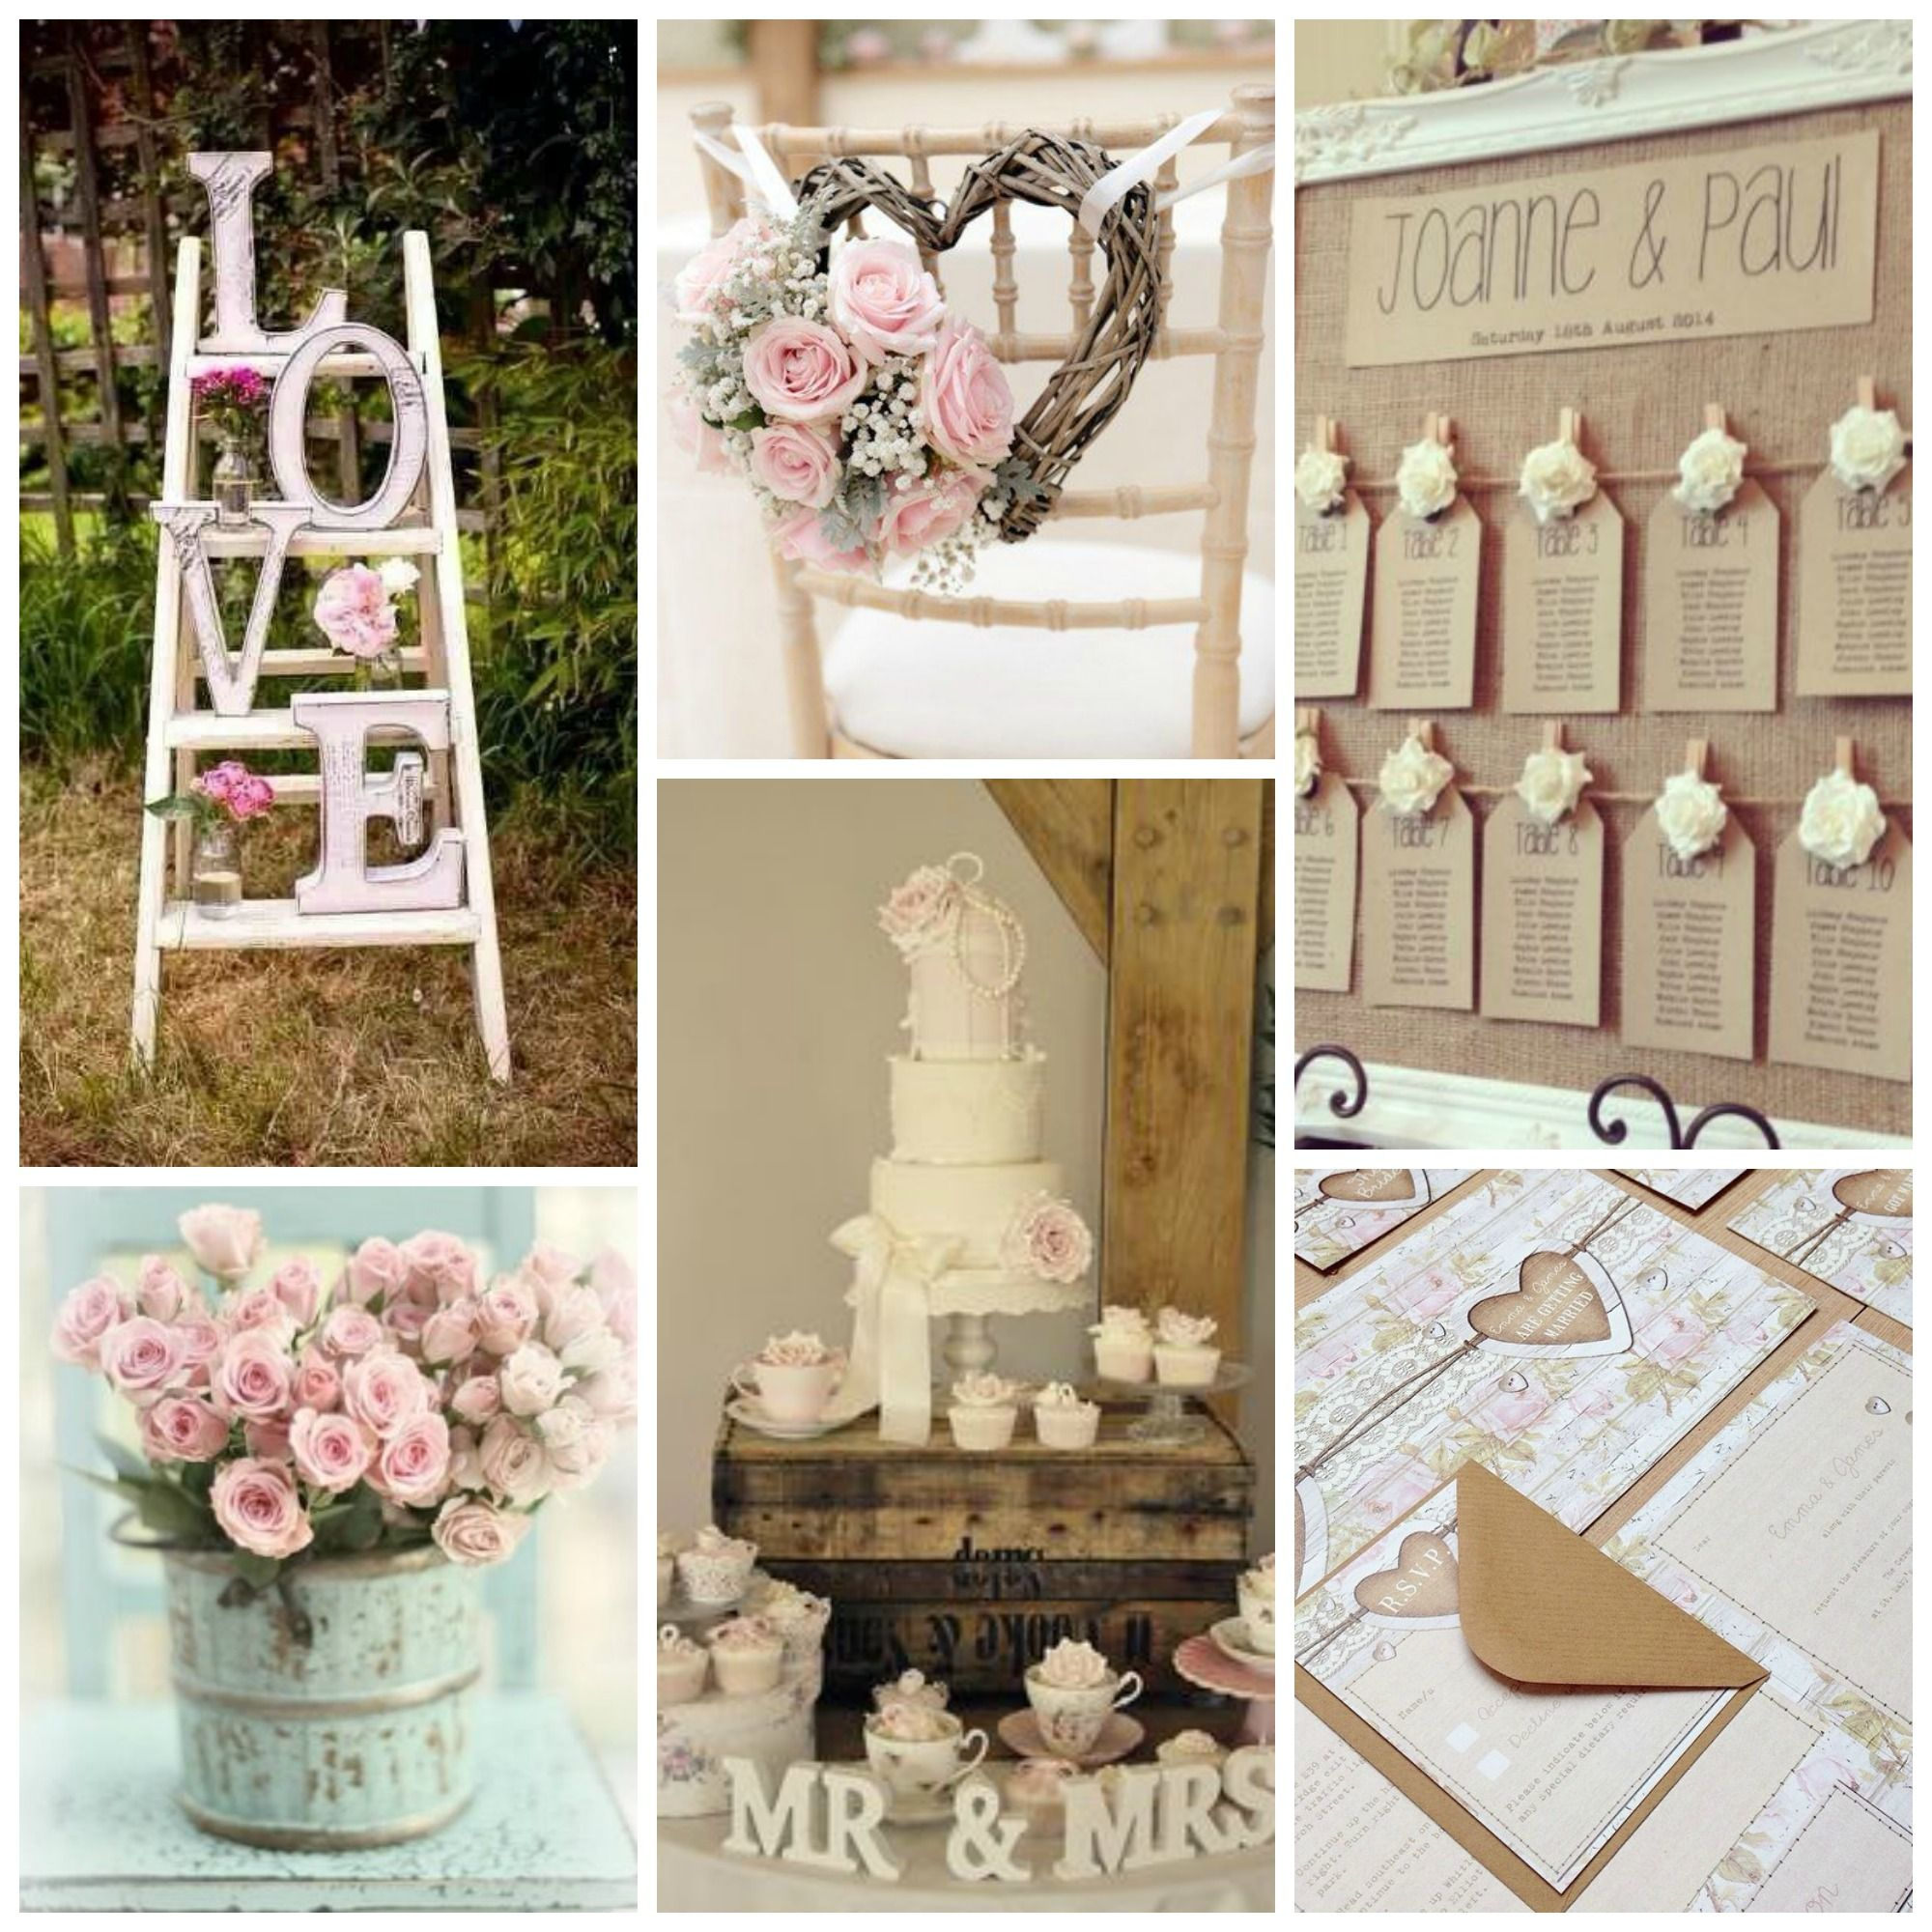 Shabby Chic Wedding Collage For More Inspiration Please Visit Us At Https Www Facebook Com Shabby Chic Wedding Cake Shabby Chic Wedding Decor Shabby Wedding